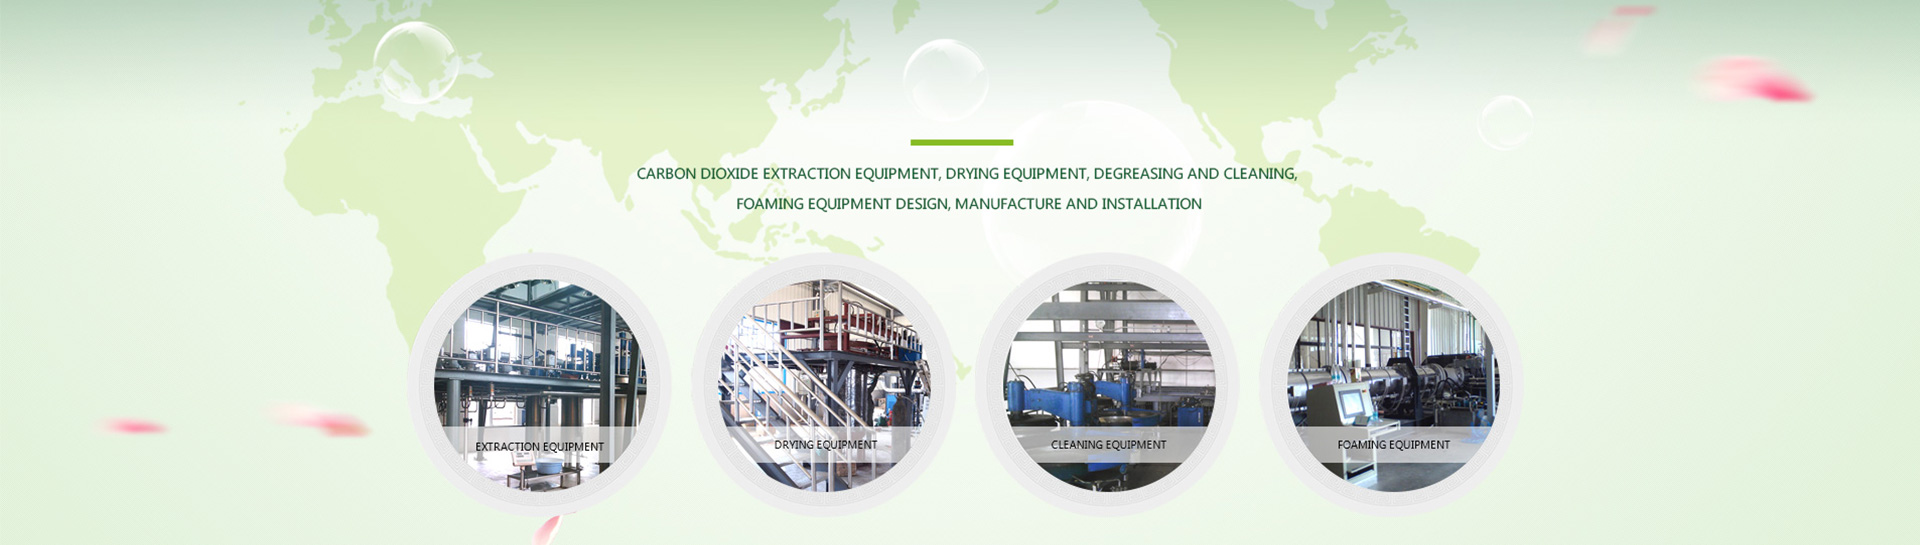 Shenyang solver supercritical extraction equipment co. LTD